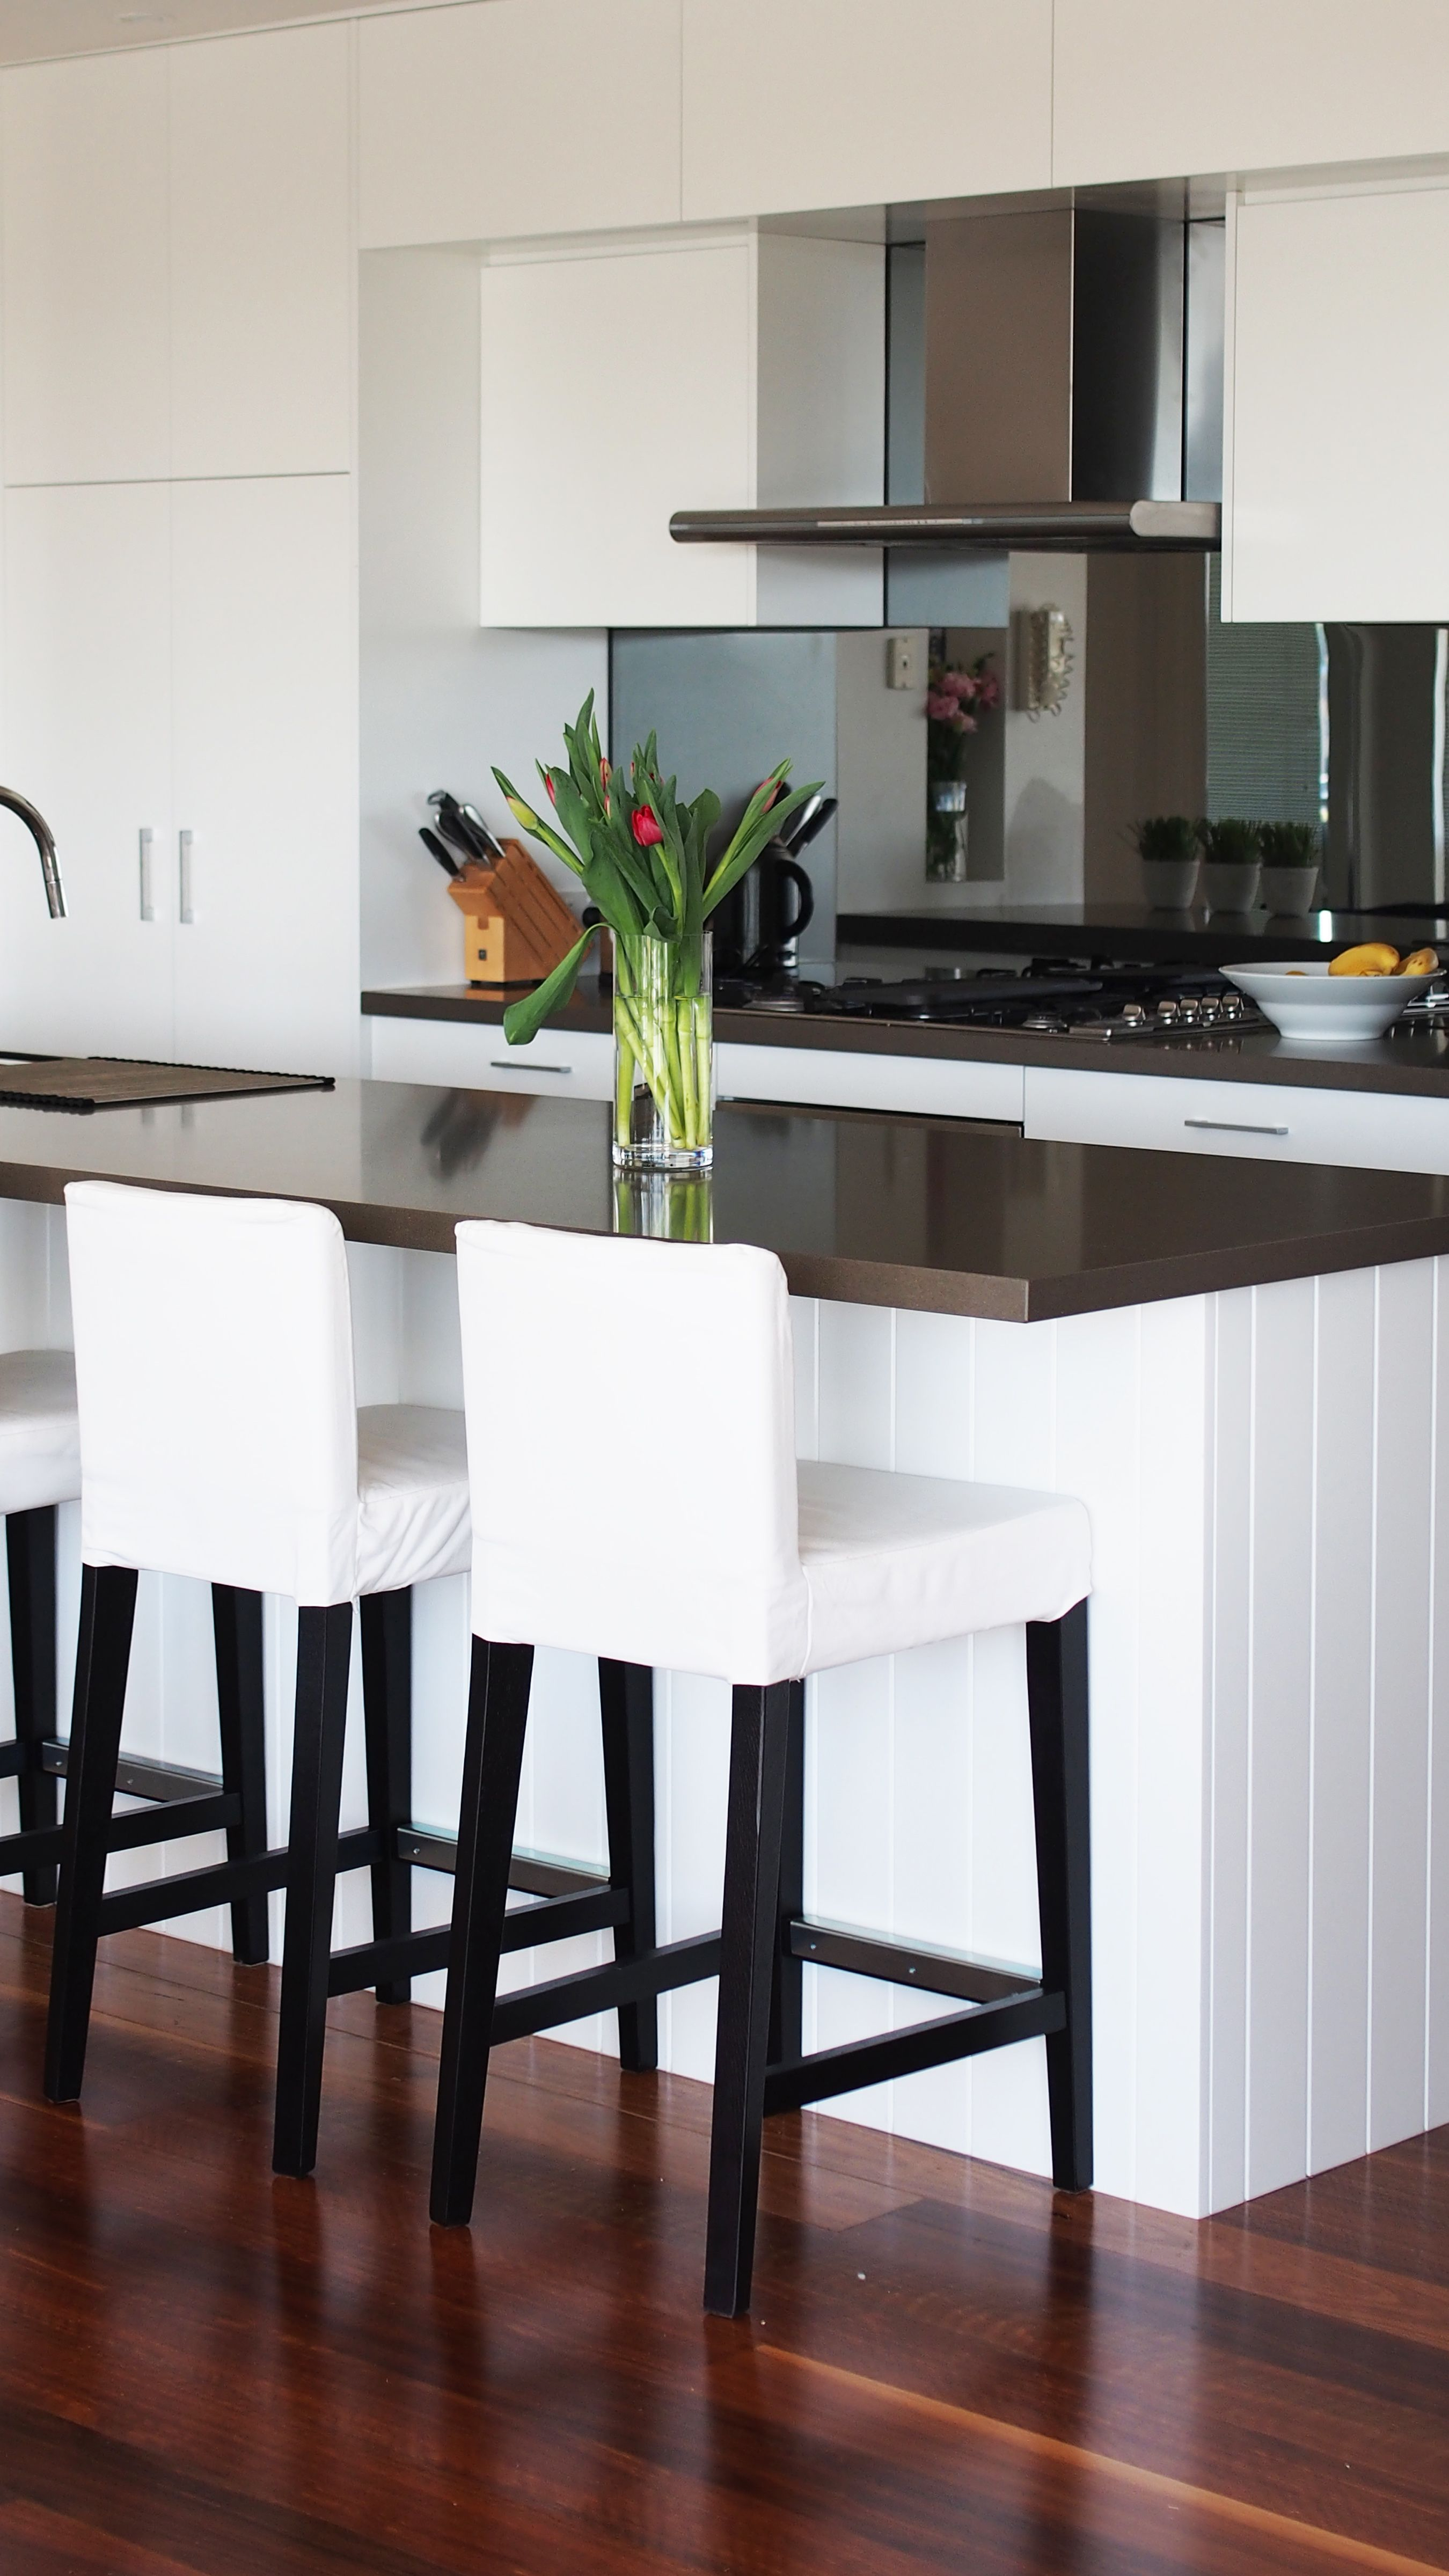 Penthouse Kitchen Project - Toowong, Brisbane Made to measure ...